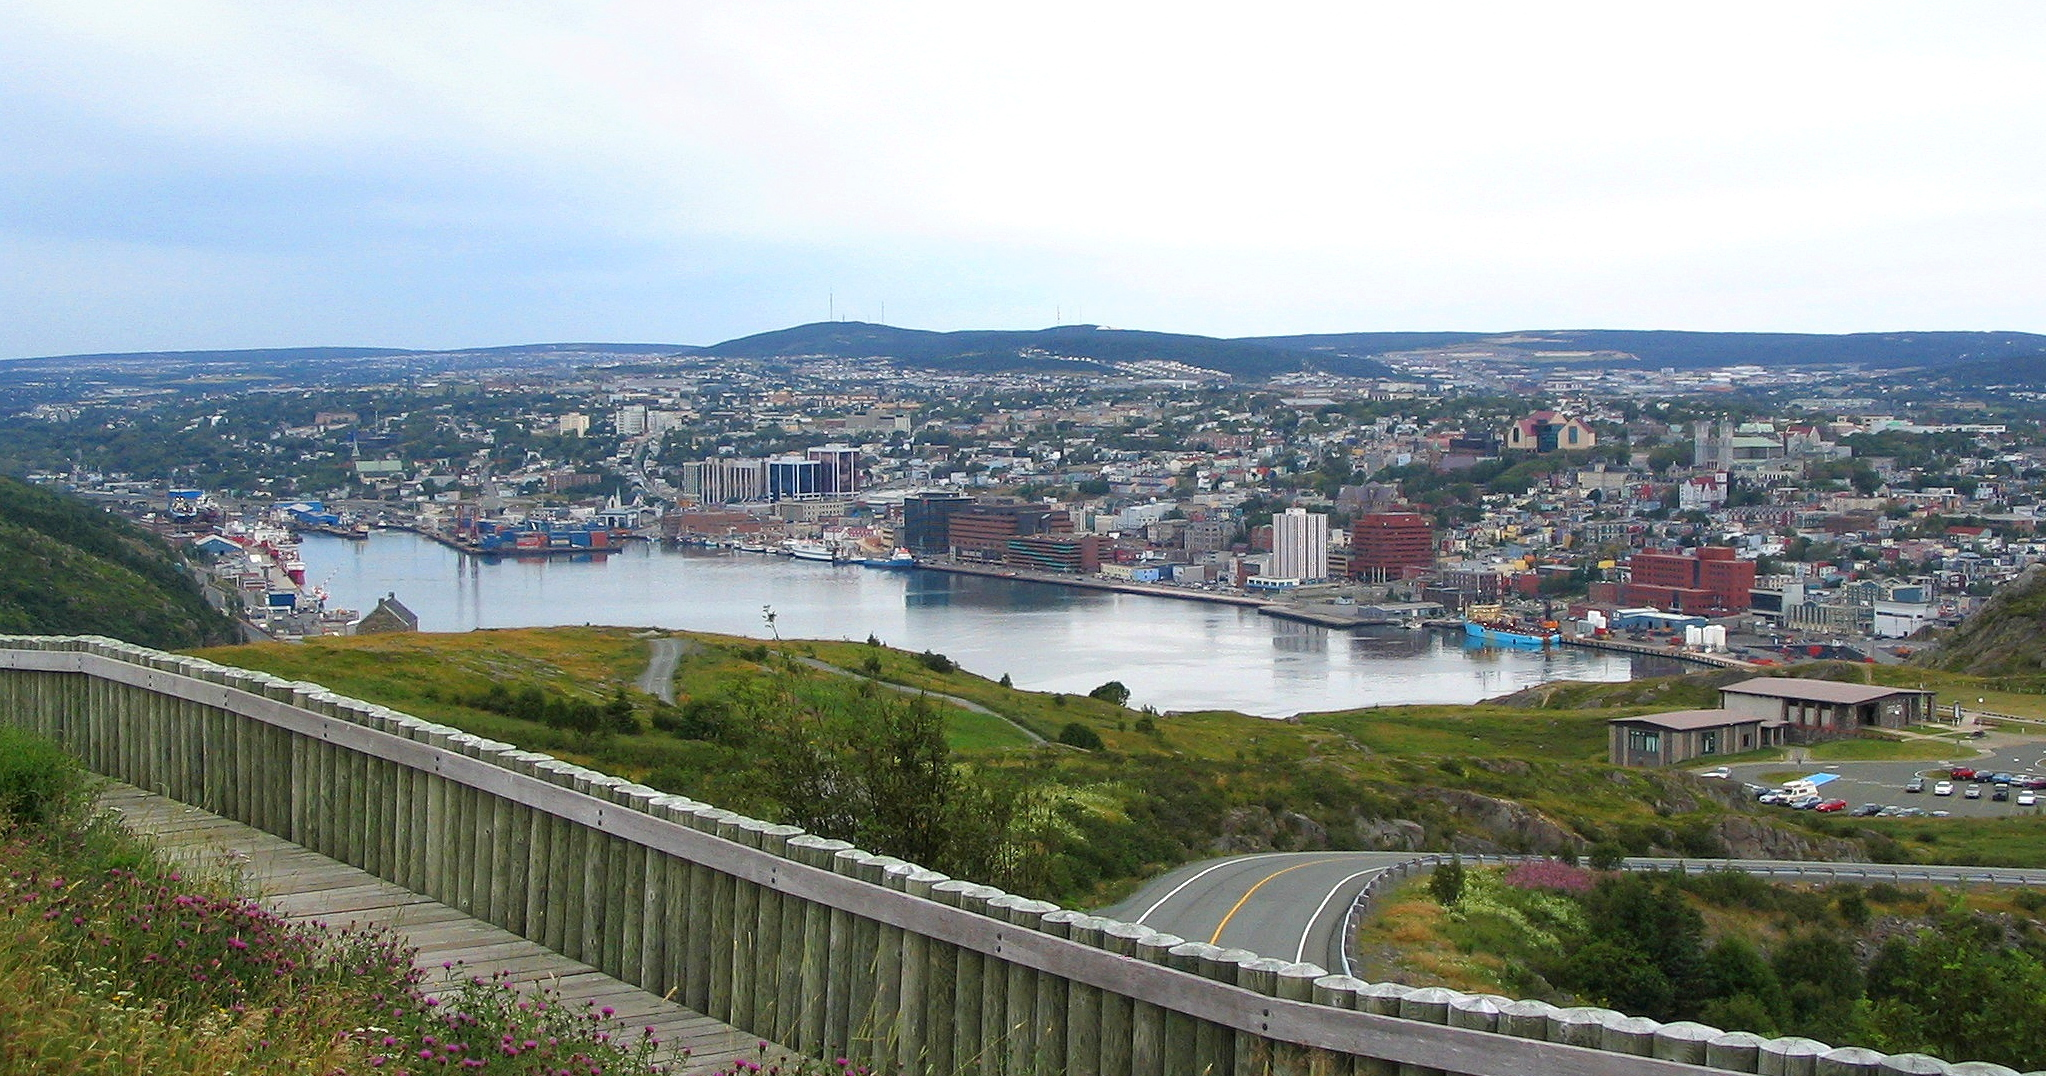 St. John's (NL) Canada  city pictures gallery : StJohns Newfoundland ViewfromSIgnalHill2 Wikipedia, the ...